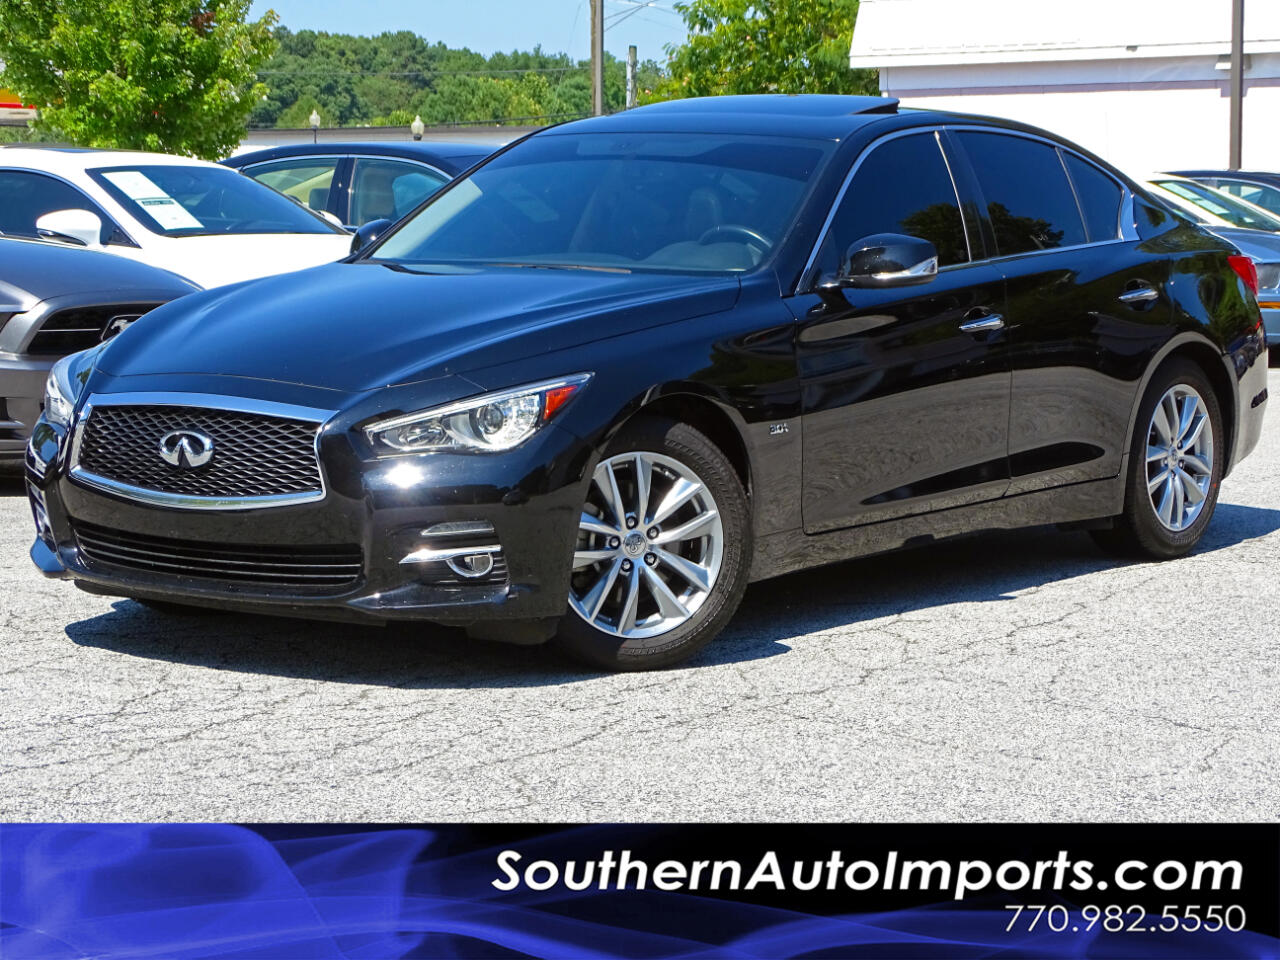 2017 Infiniti Q50 3.0t w/Back Up Camera Sunroof